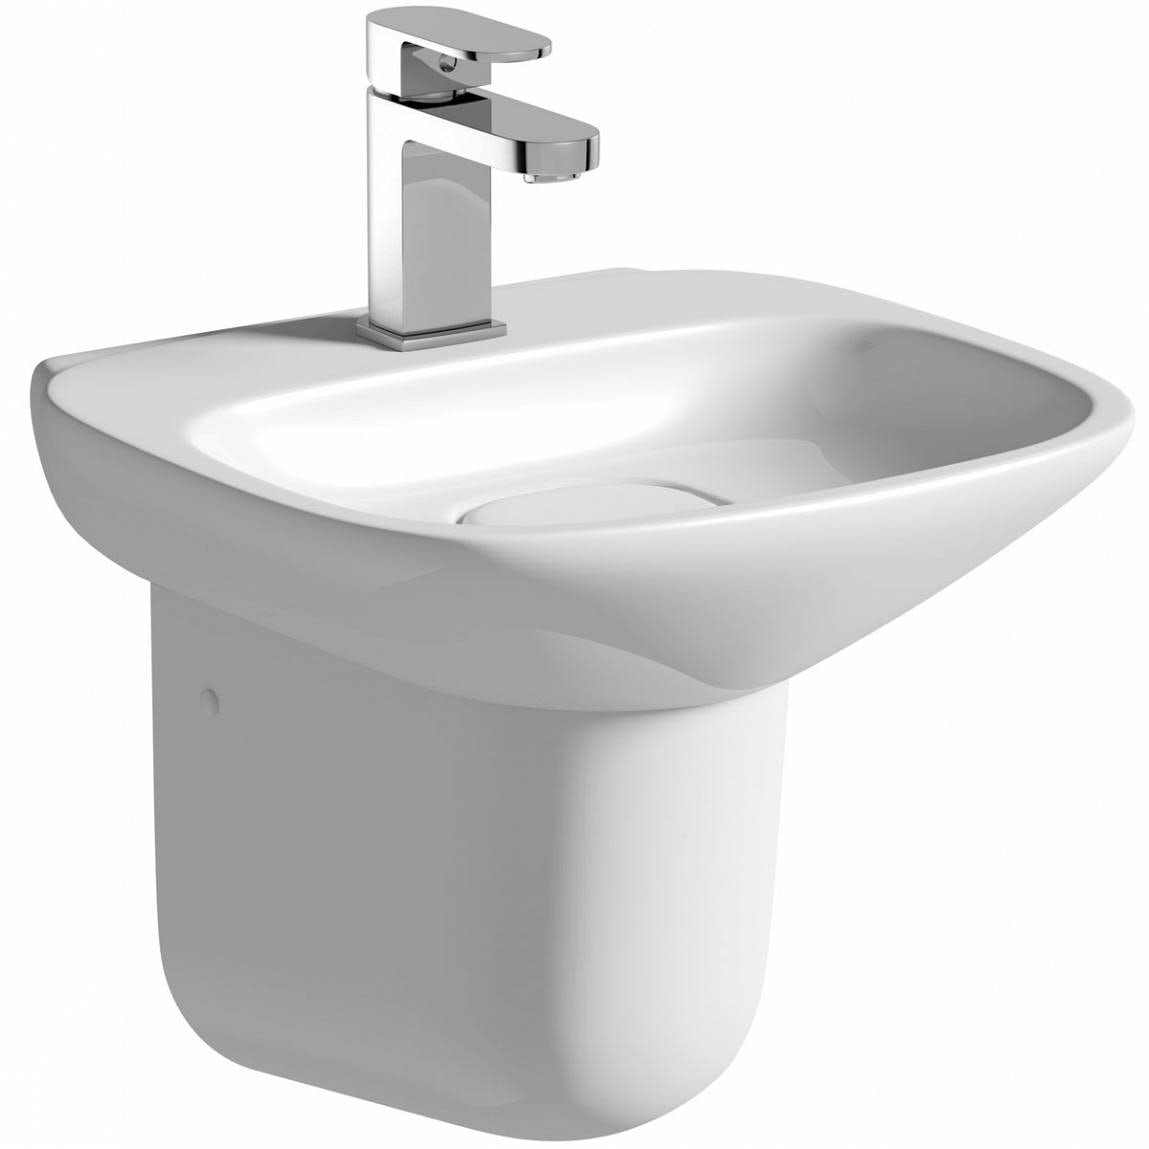 Mode Fairbanks semi pedestal basin 400mm